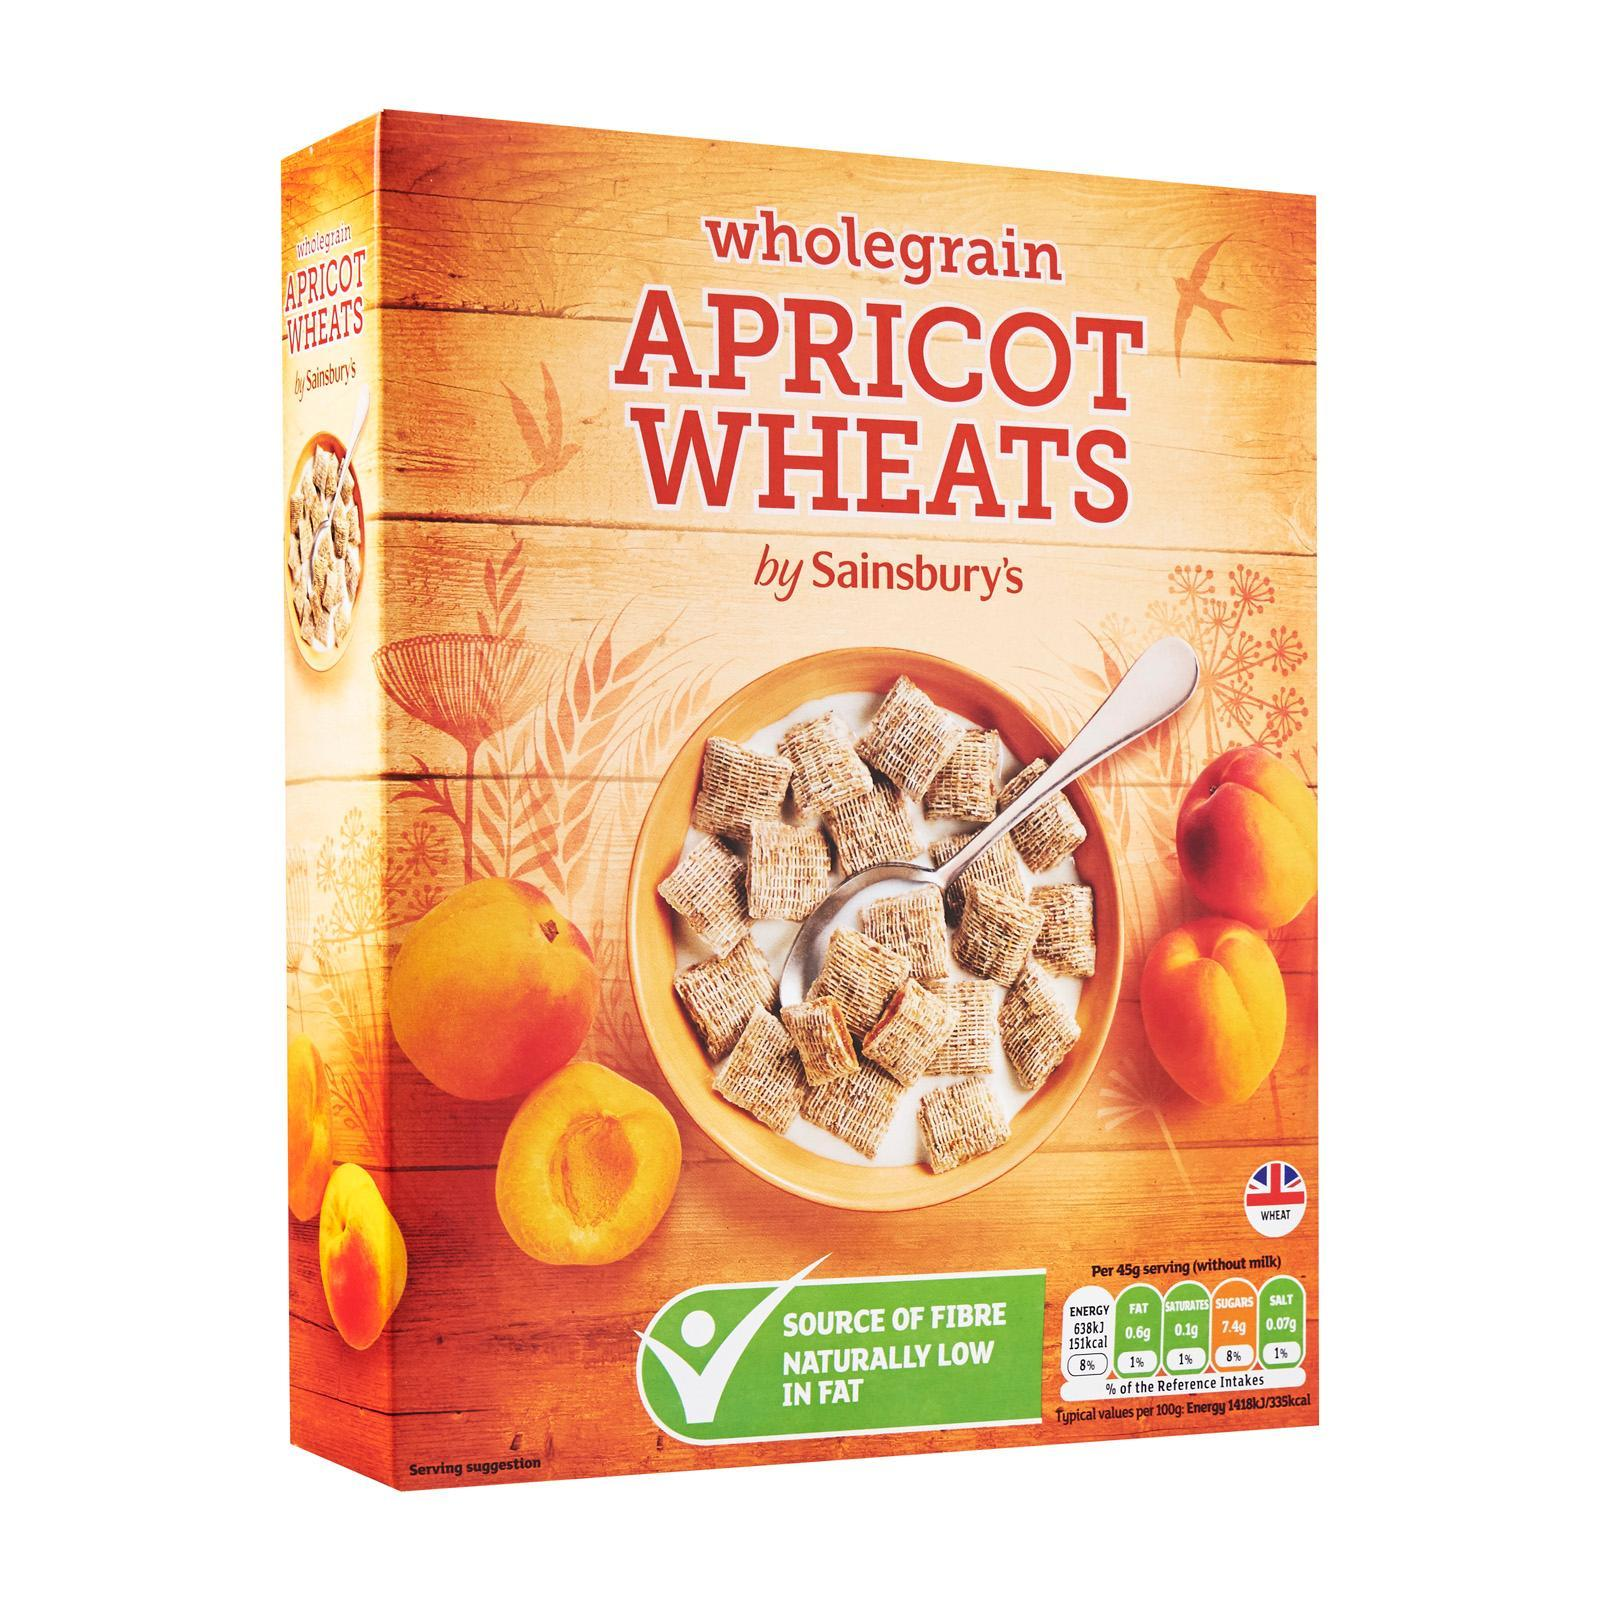 Sainsbury's Wholegrain Apricot Wheats Cereal